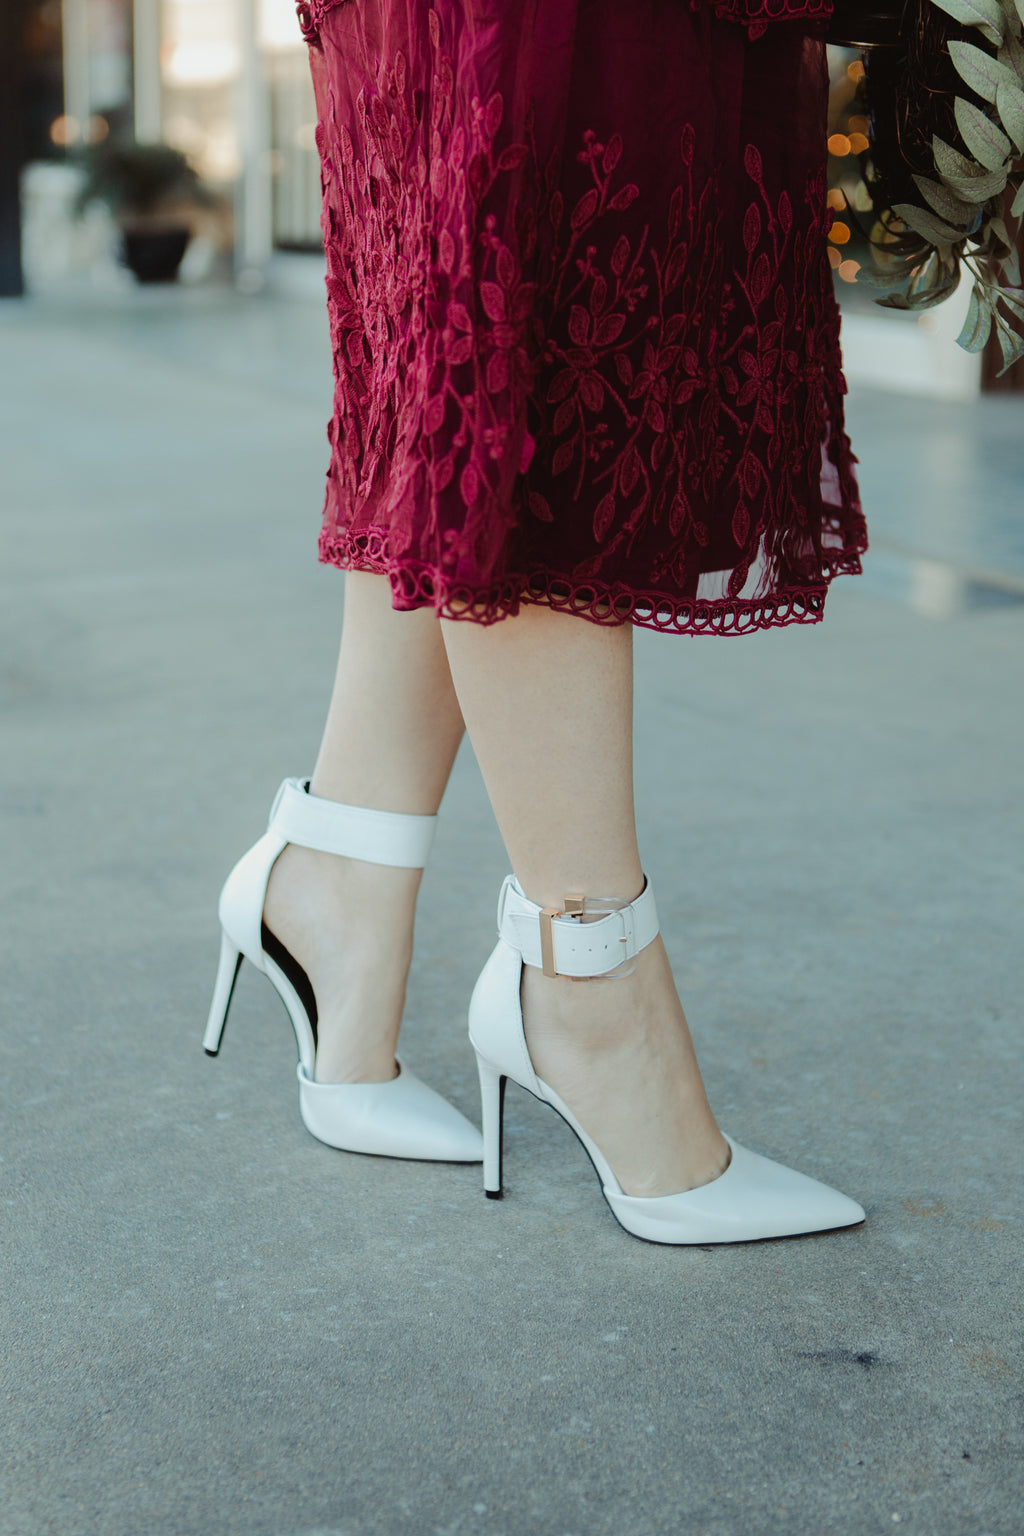 Iva Strap Heels in White Leather